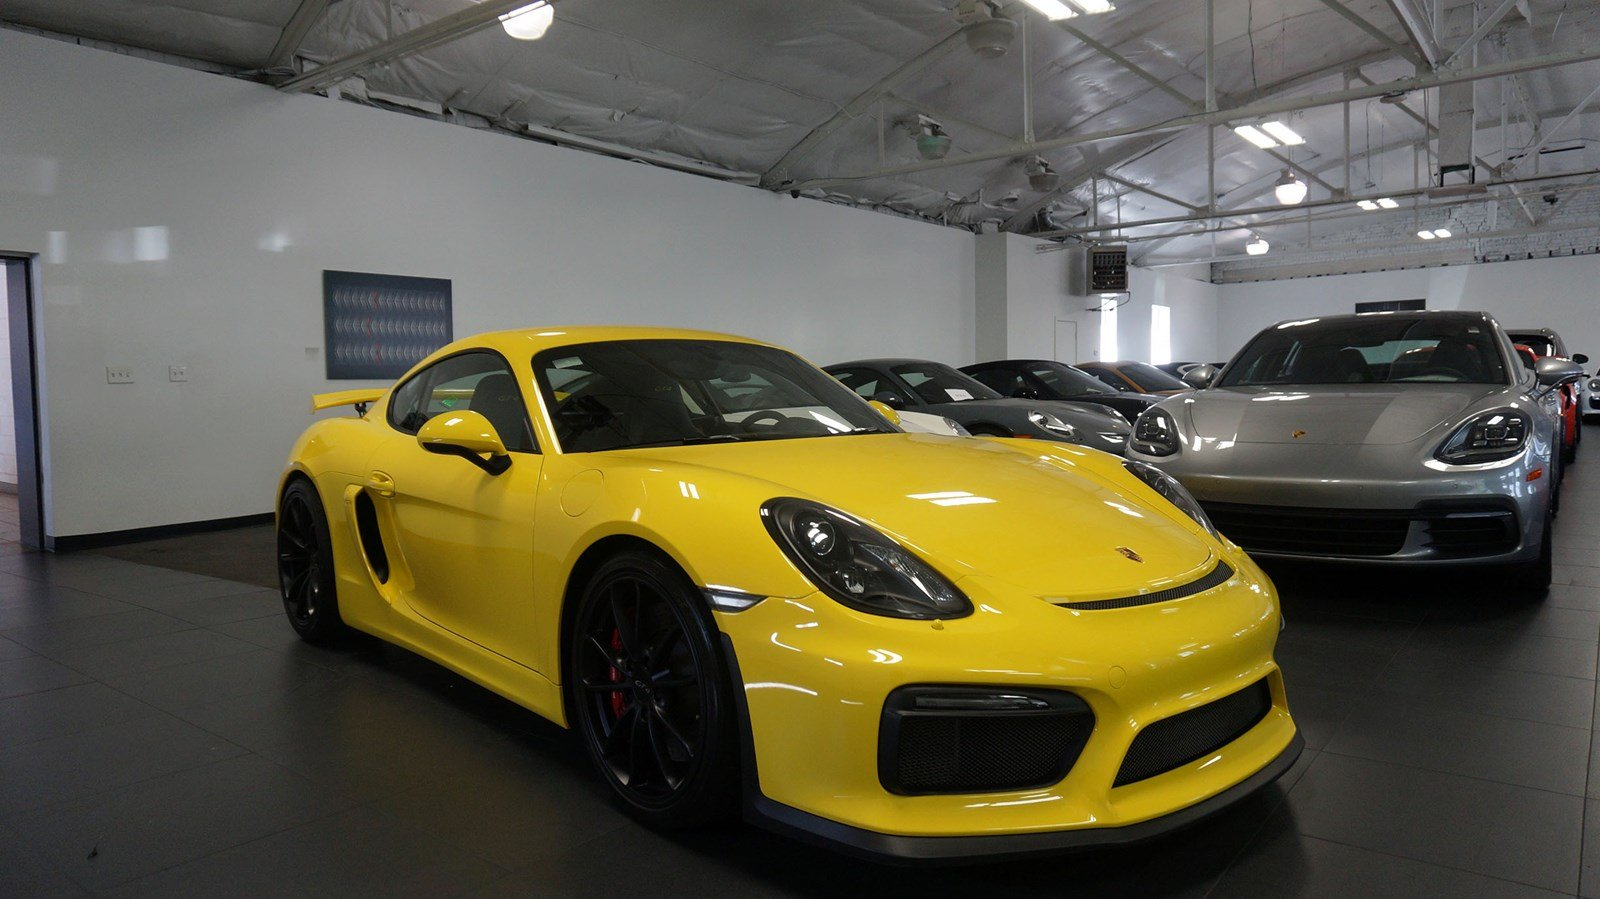 certified pre-owned 2016 porsche cayman gt4 2dr car in salt lake